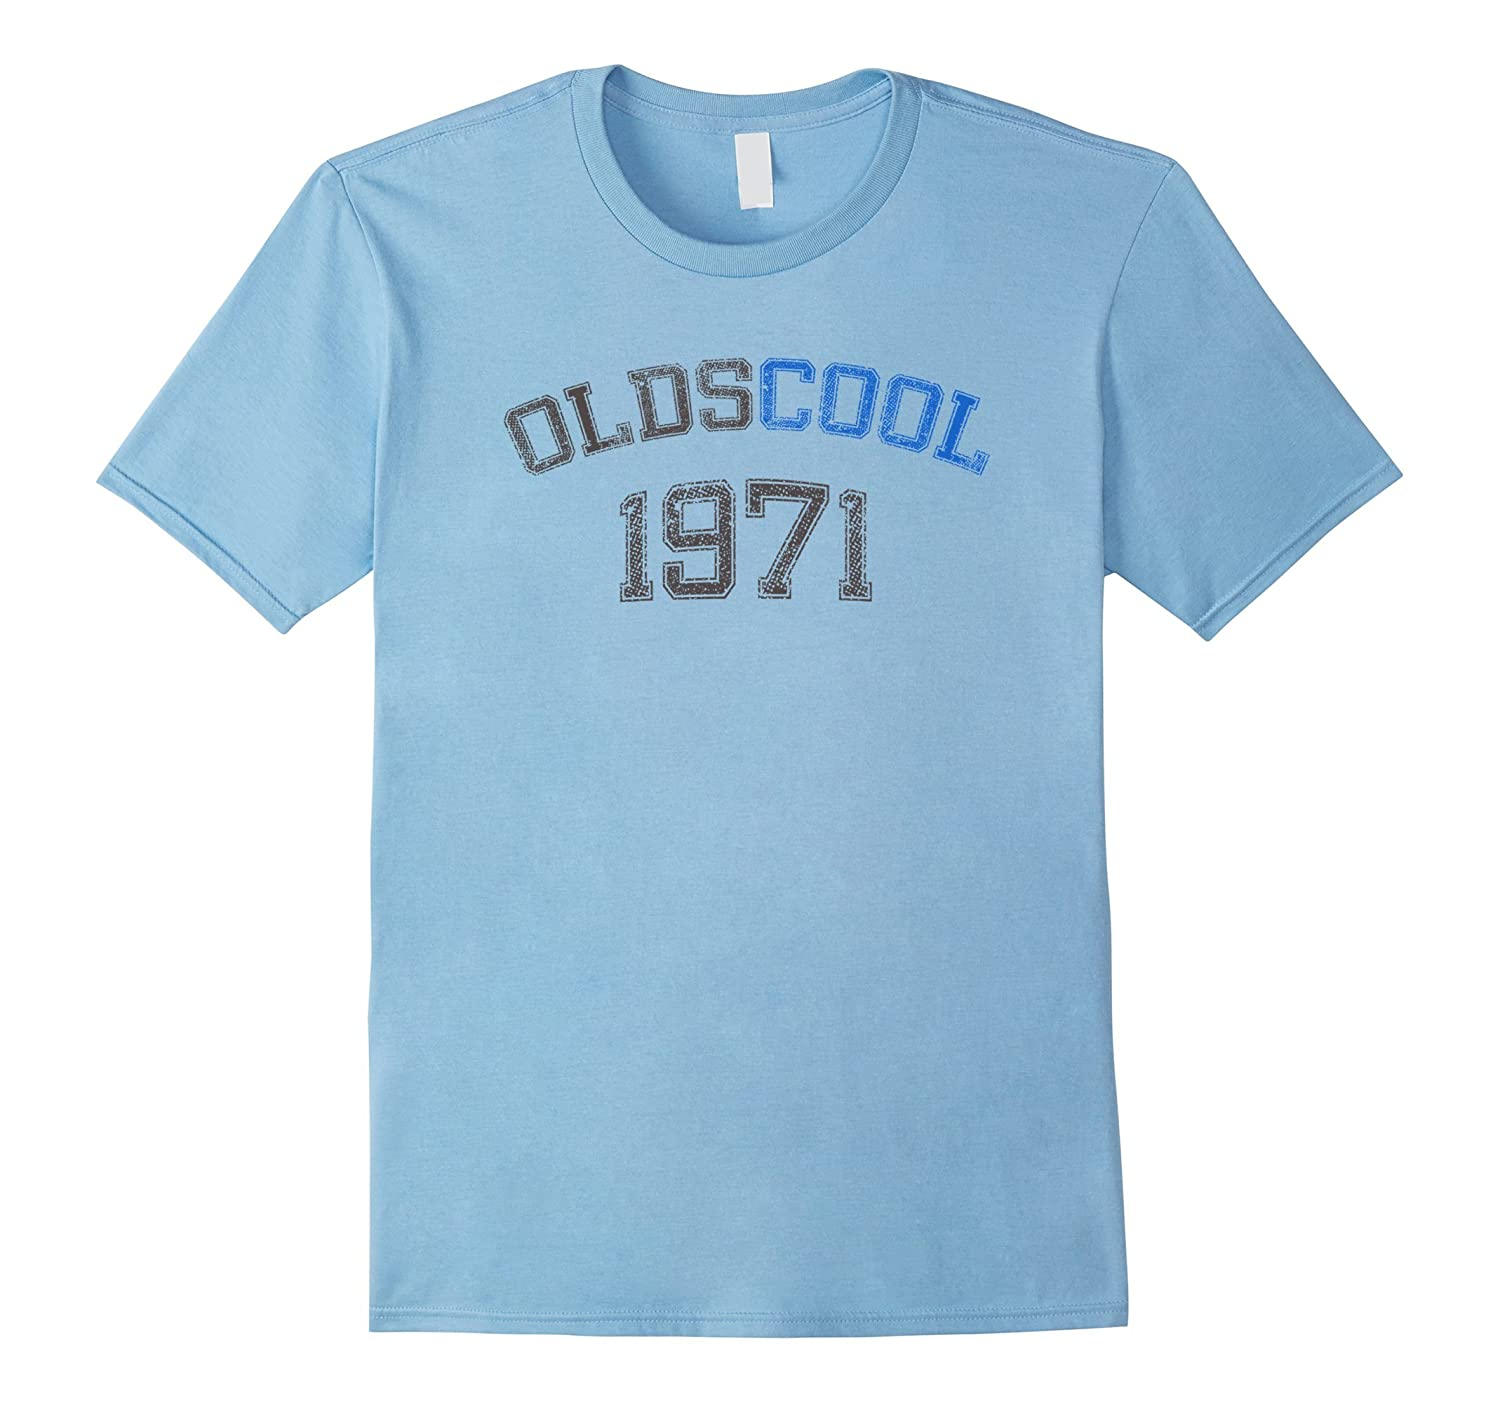 1971 T-shirt for women OldsCOOL Birthday Gift-TH